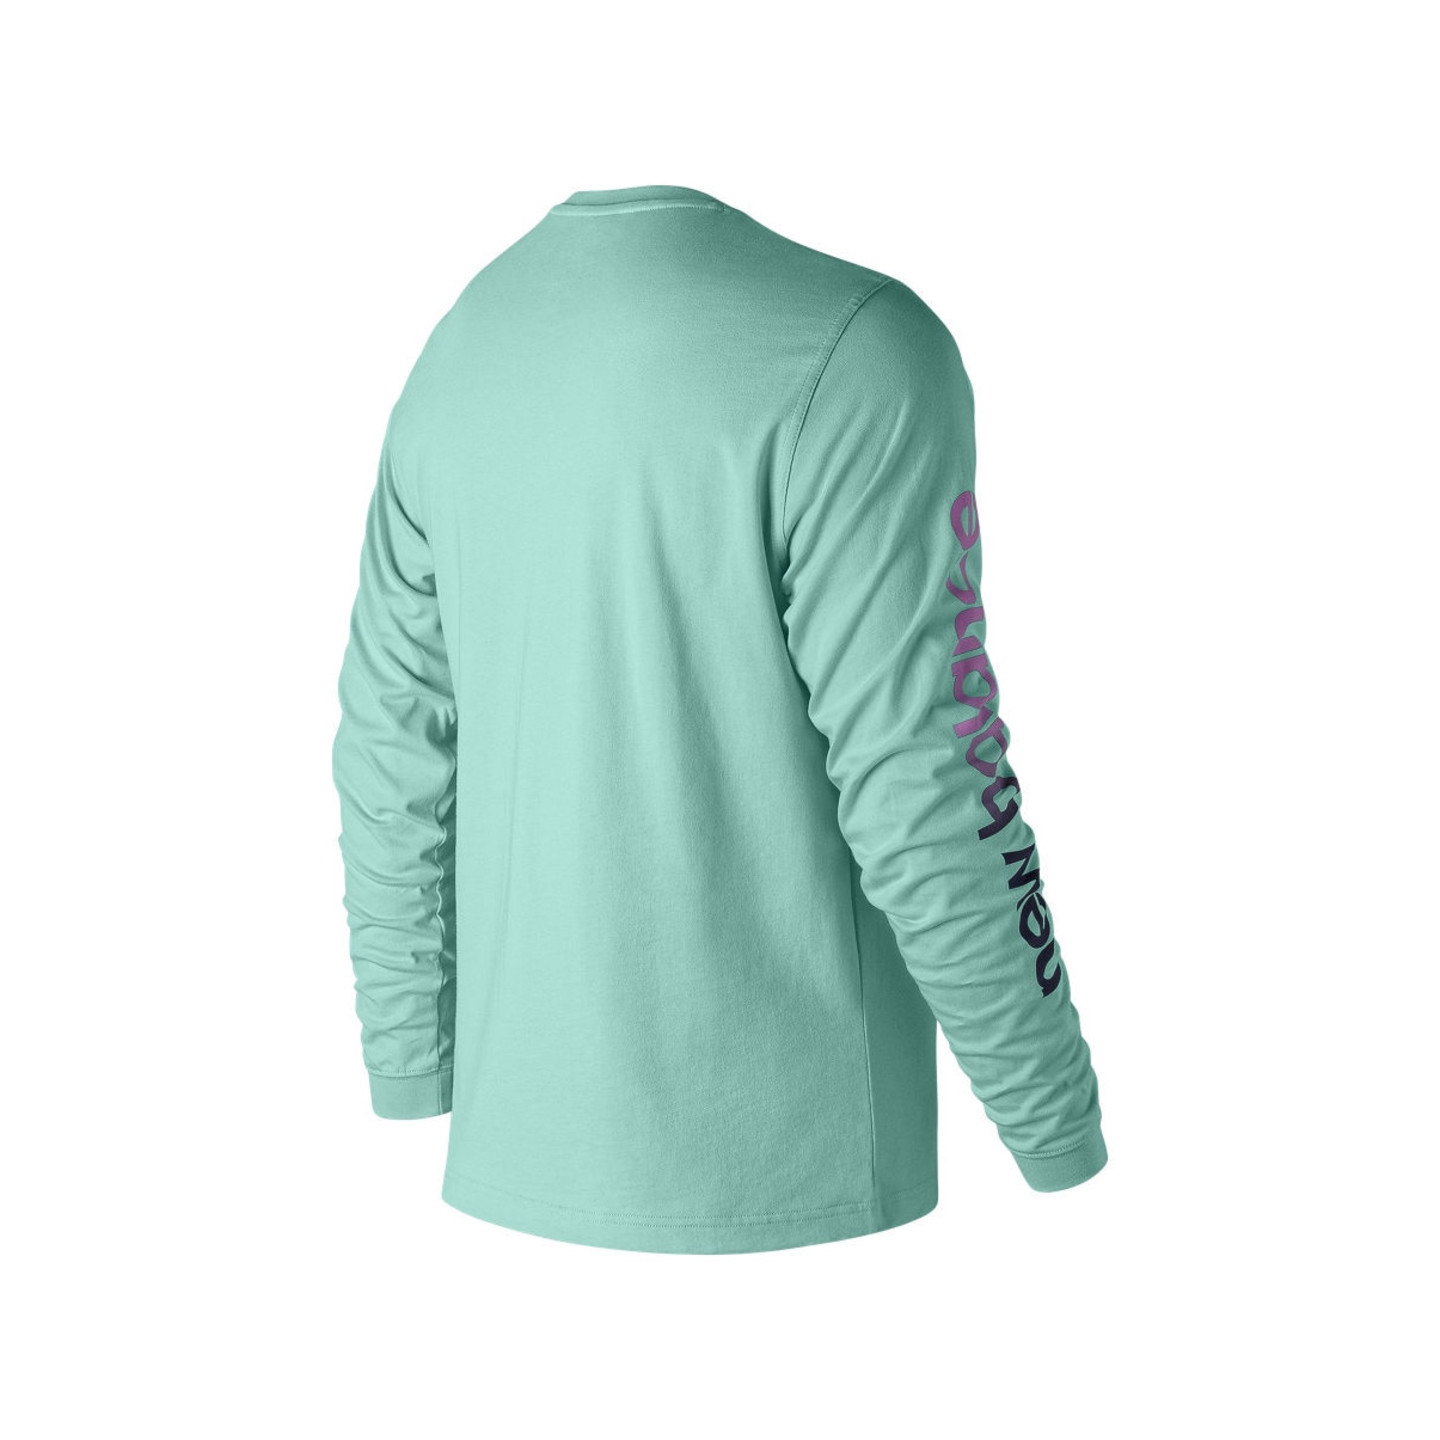 New Balance Long Sleeve Tee Light Reef MT91545LRF